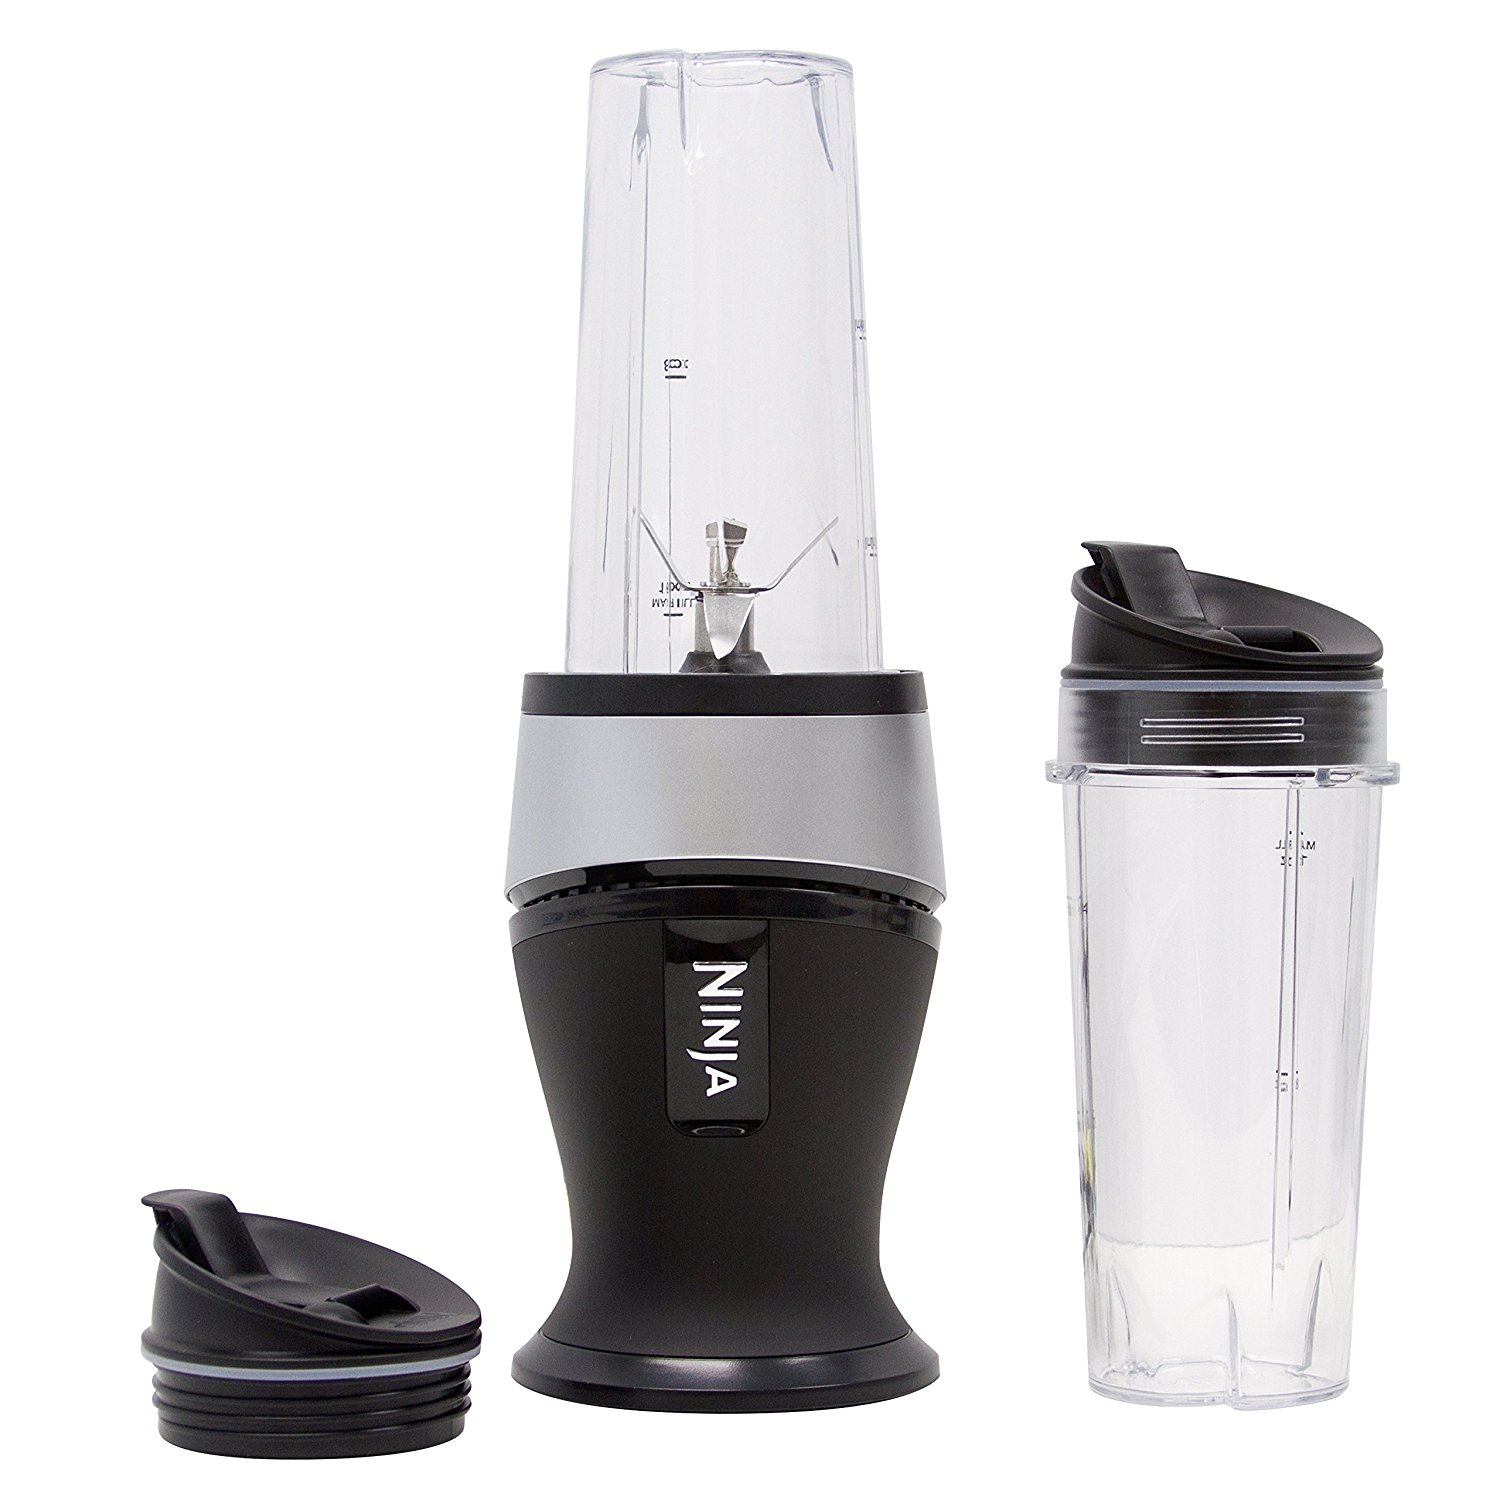 ninja-personal-blender-make-baby-food.jpg